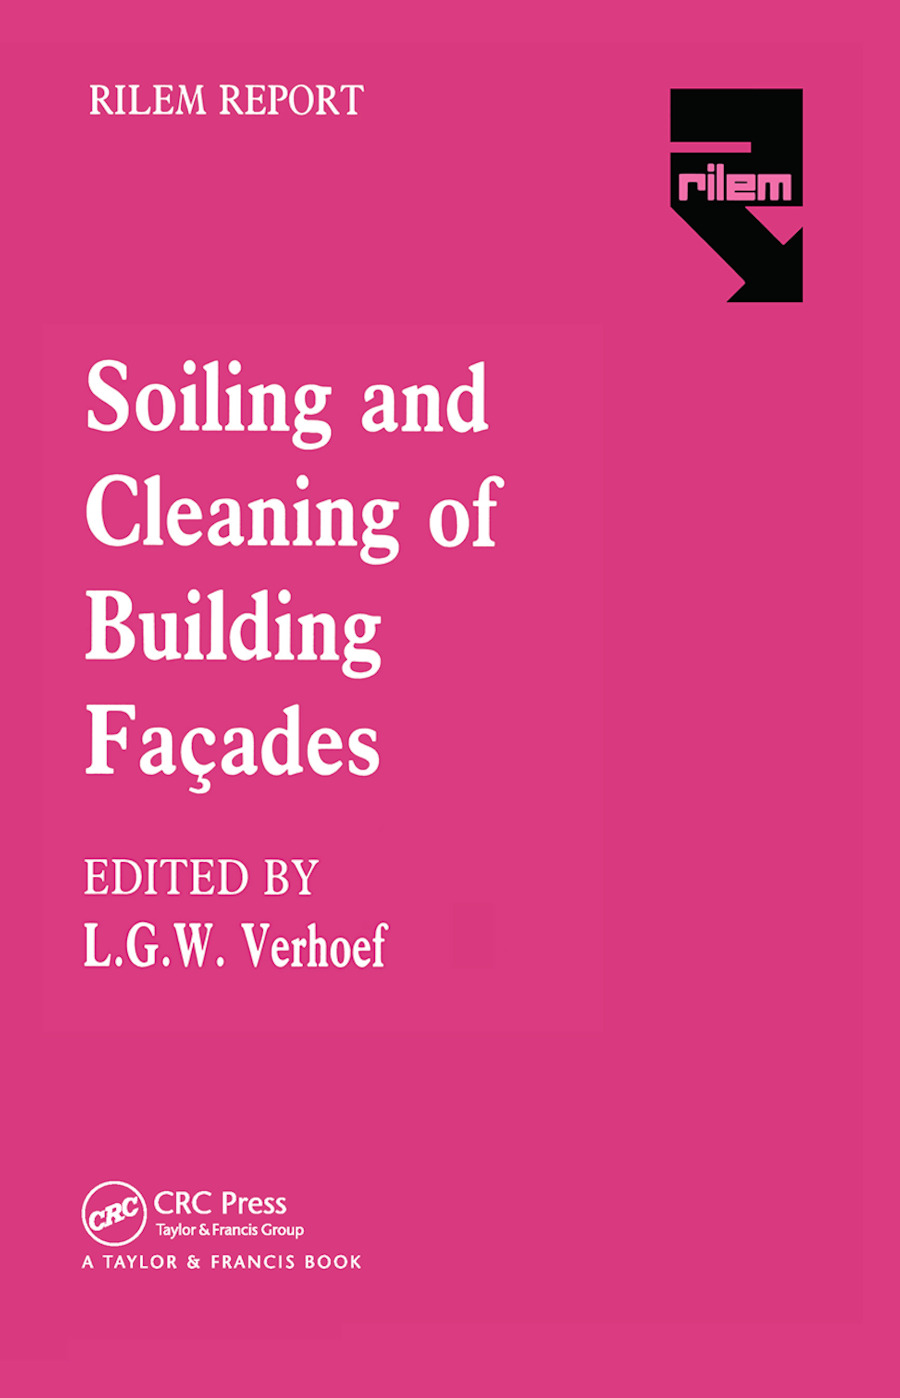 The Soiling and Cleaning of Building Facades book cover